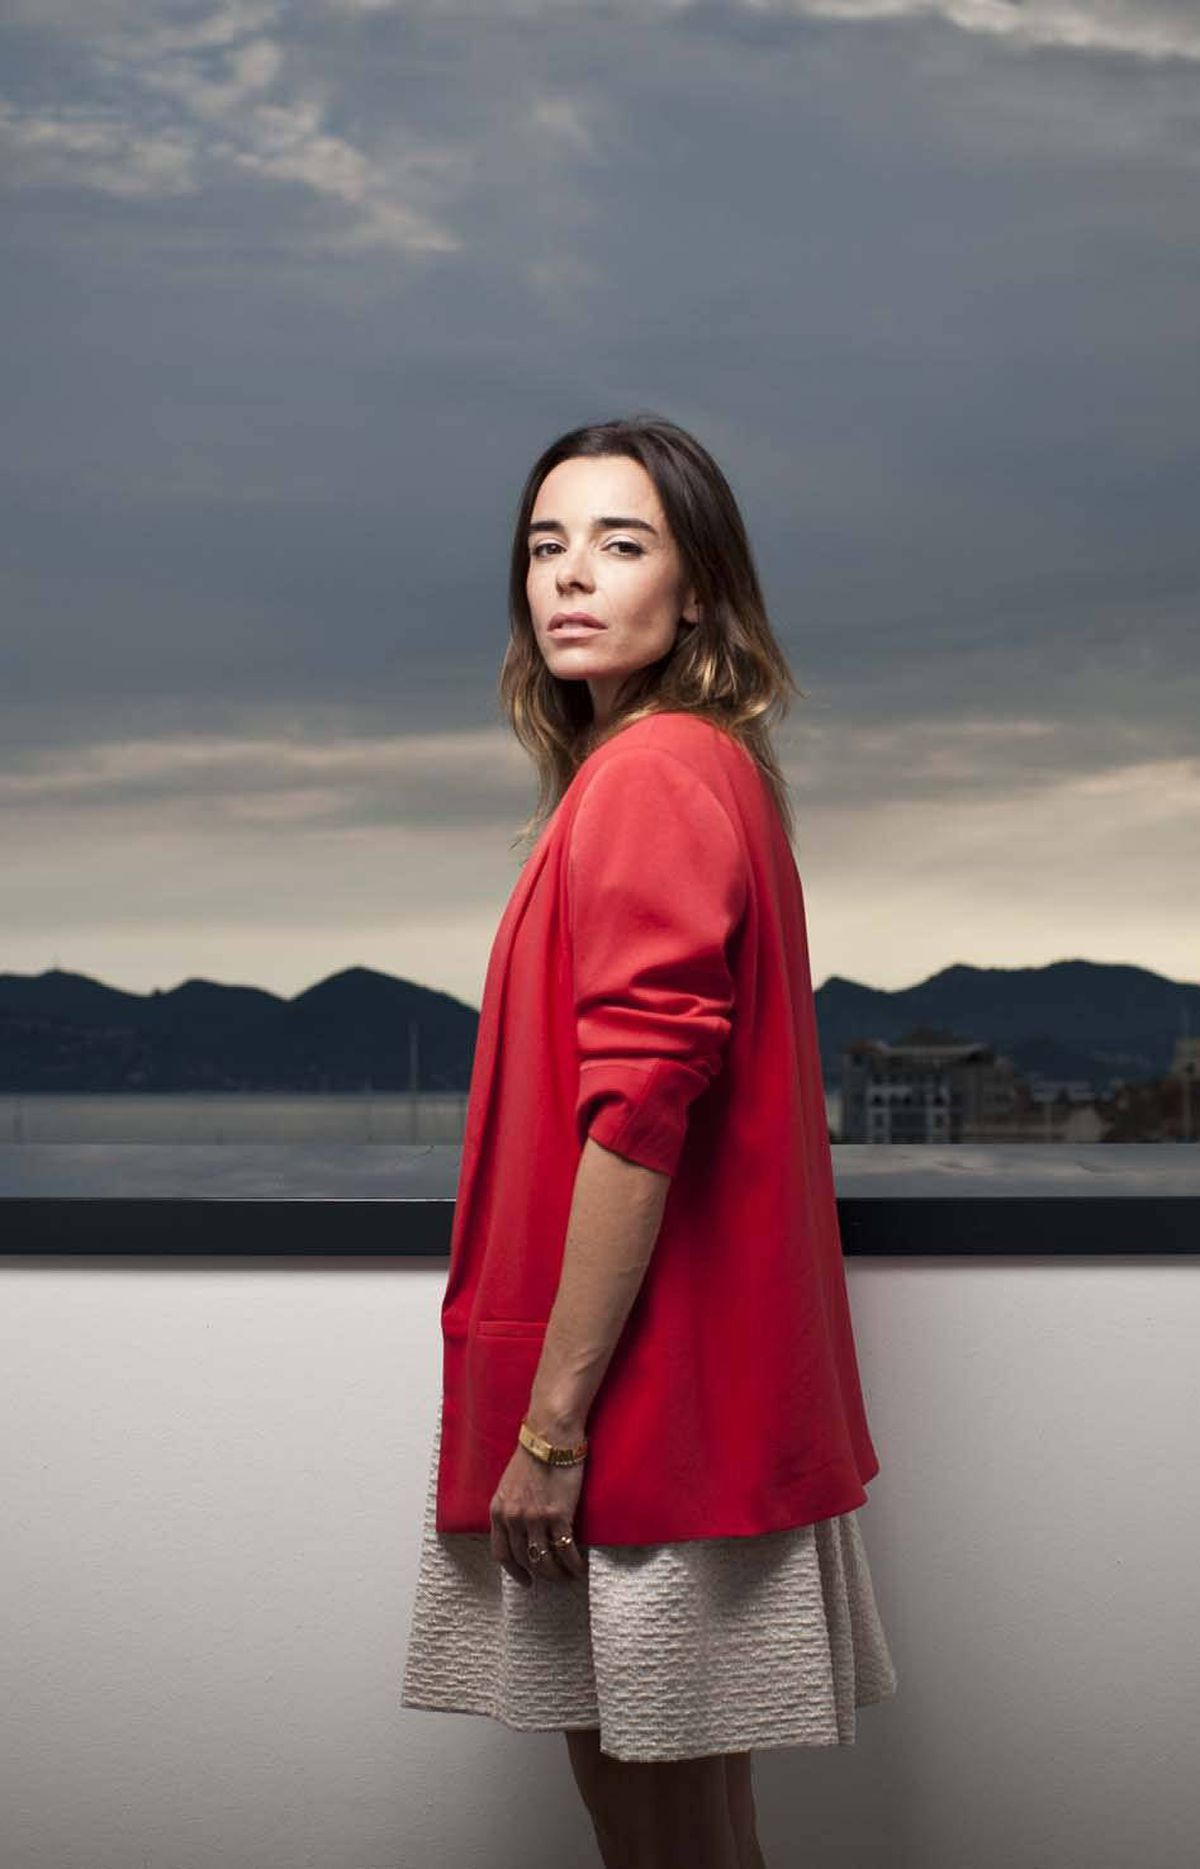 French actress Elody Bouchez is your French Actress of the Day for her use of a high ledge overlooking a distant shore to embody the essential emptiness of our lives and remind us of the melancholy fact that suicide is our only escape.